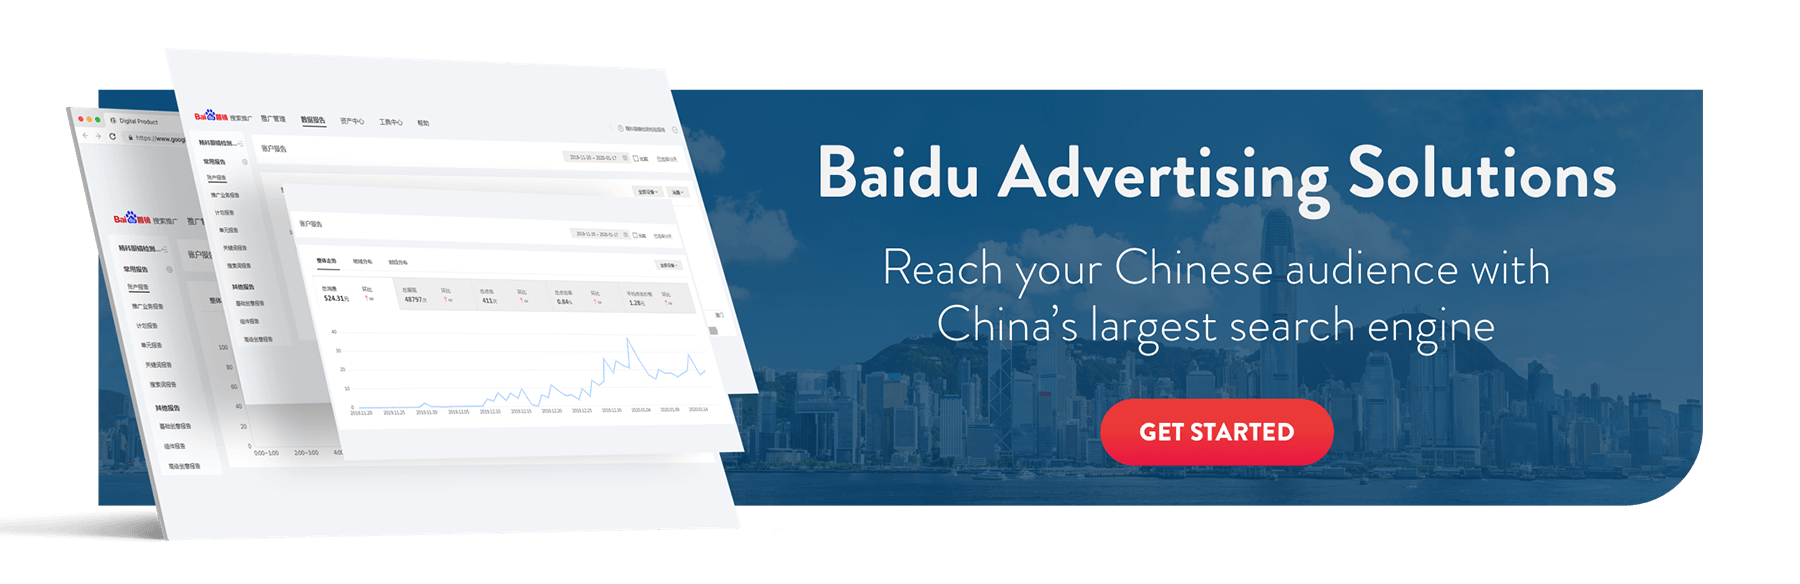 Baidu advertising services